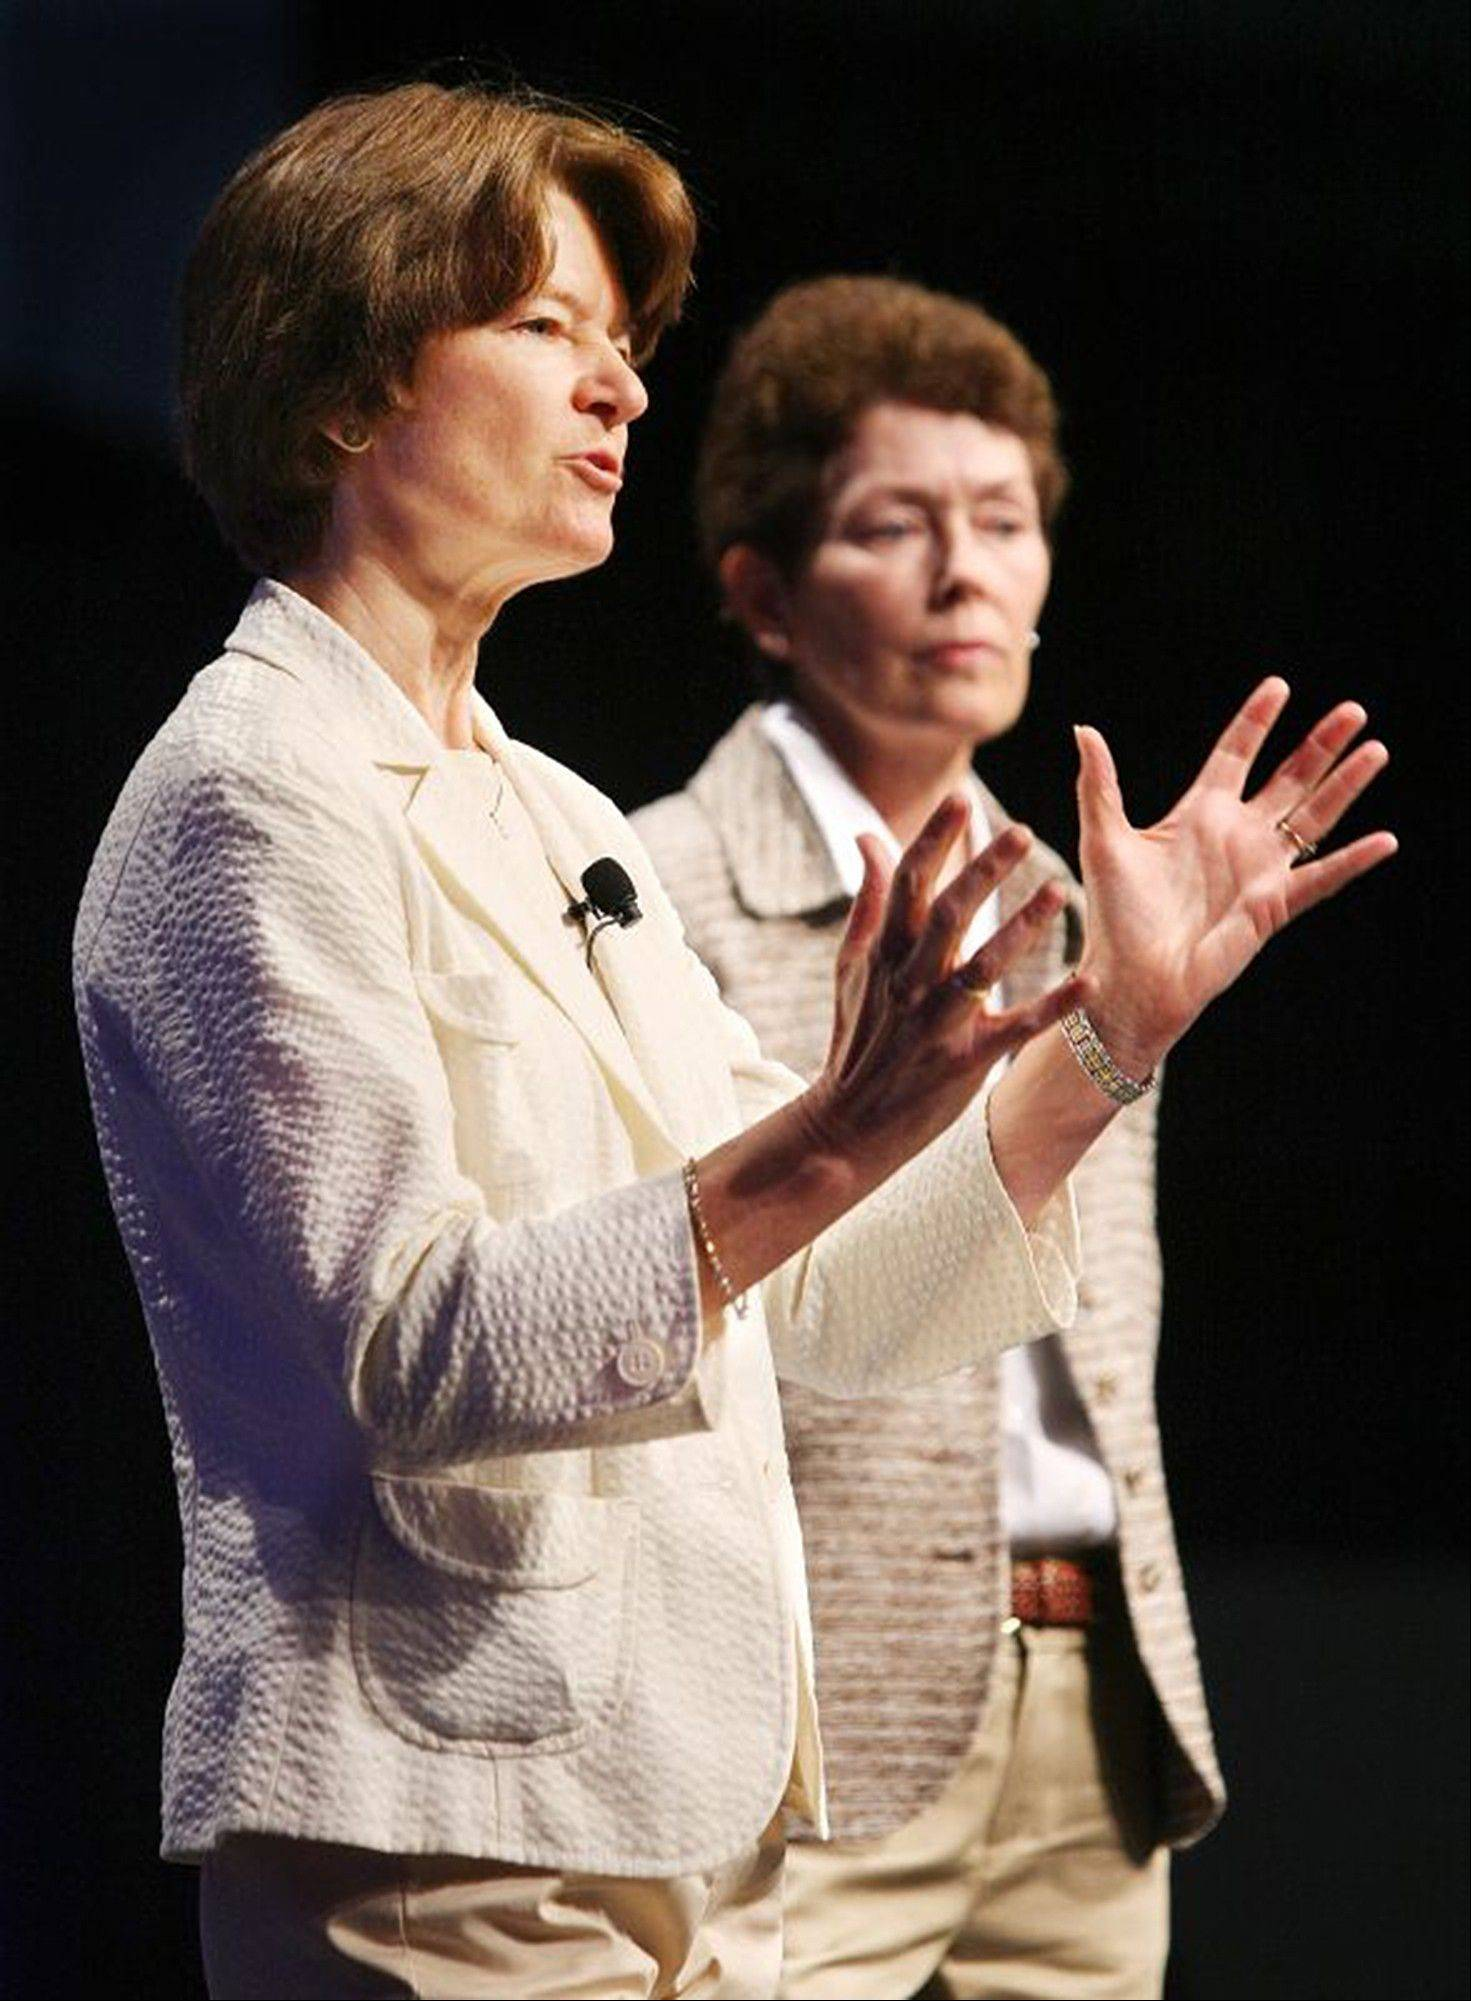 Sally Ride, foreground, and Tam O-Shaughnessy discuss the role of women in science and how the earth�s climate is changing during an American Library Association conference in Anaheim, Calif., June 2008.